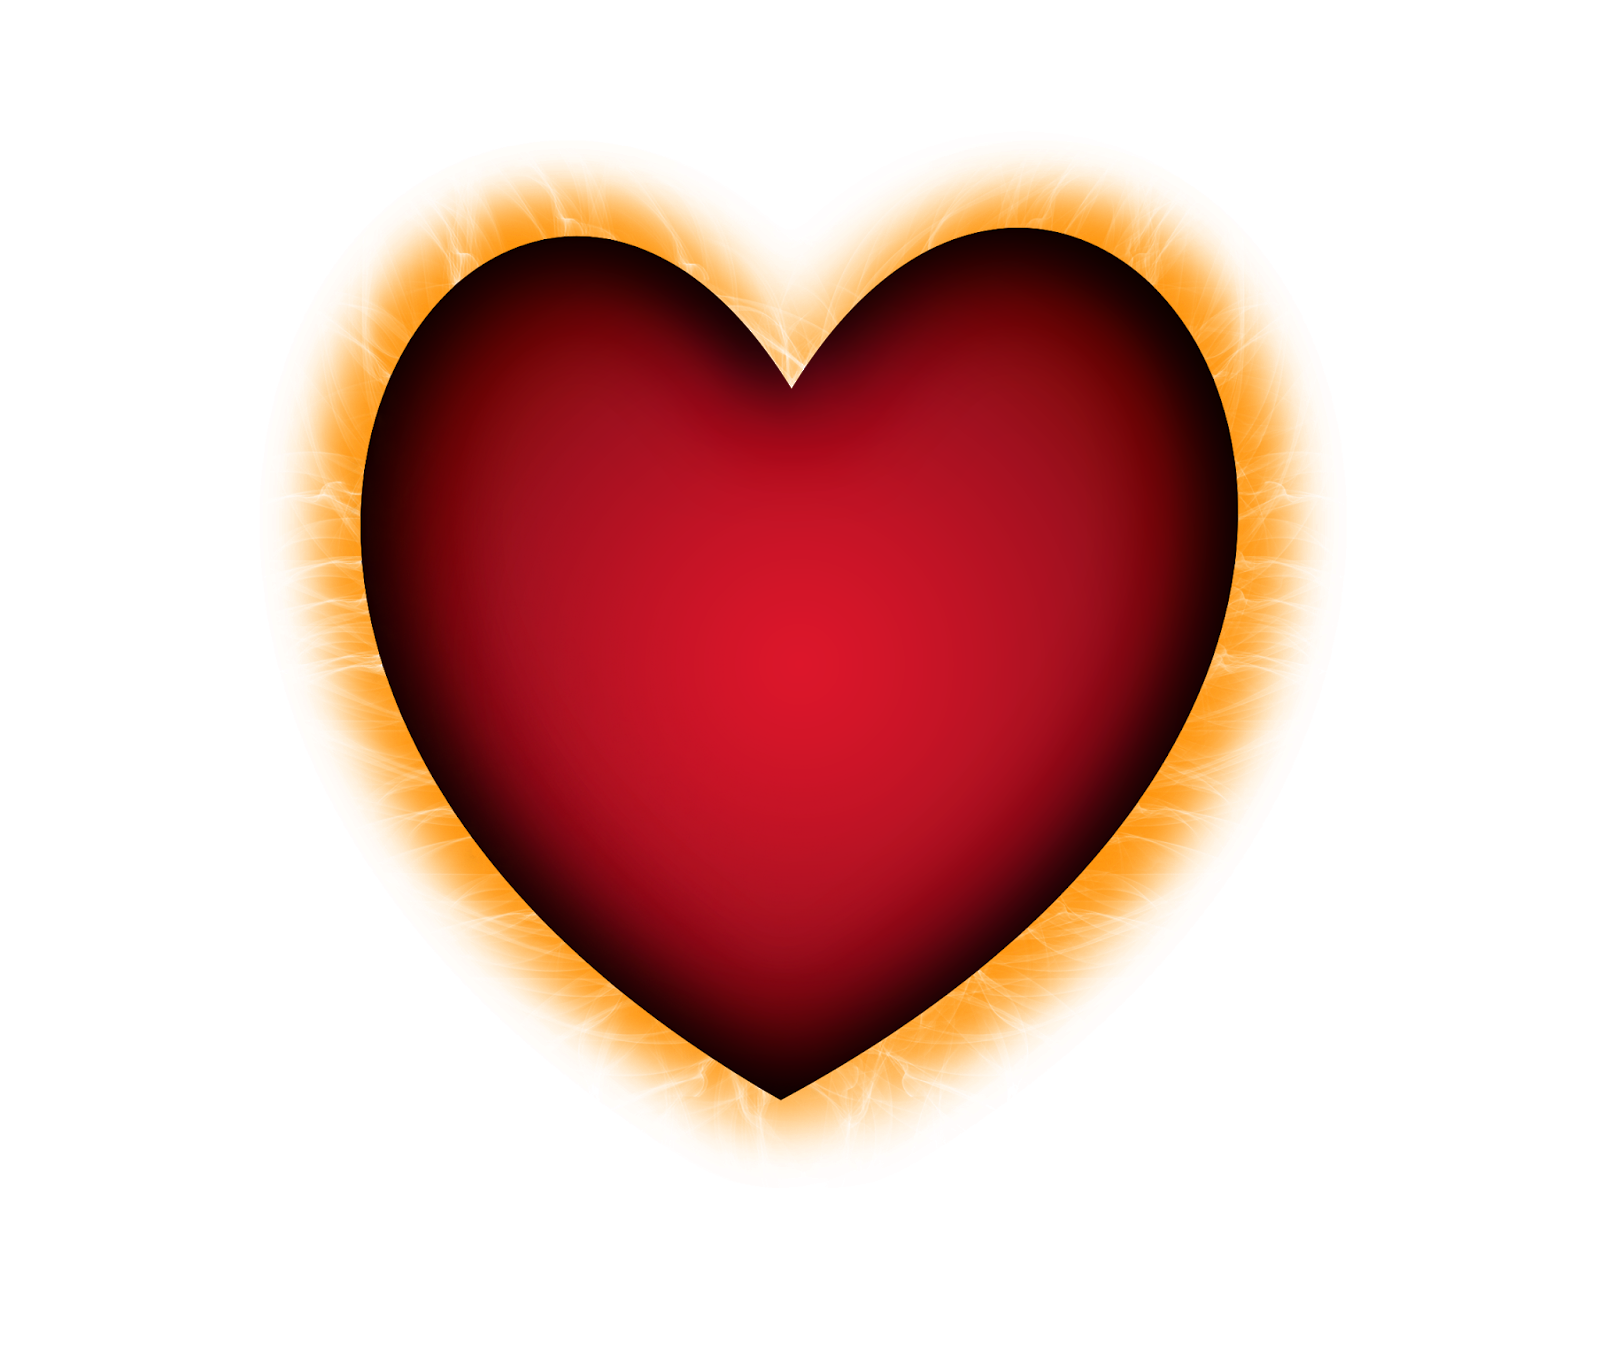 Heart png high definition. Hd red shape free